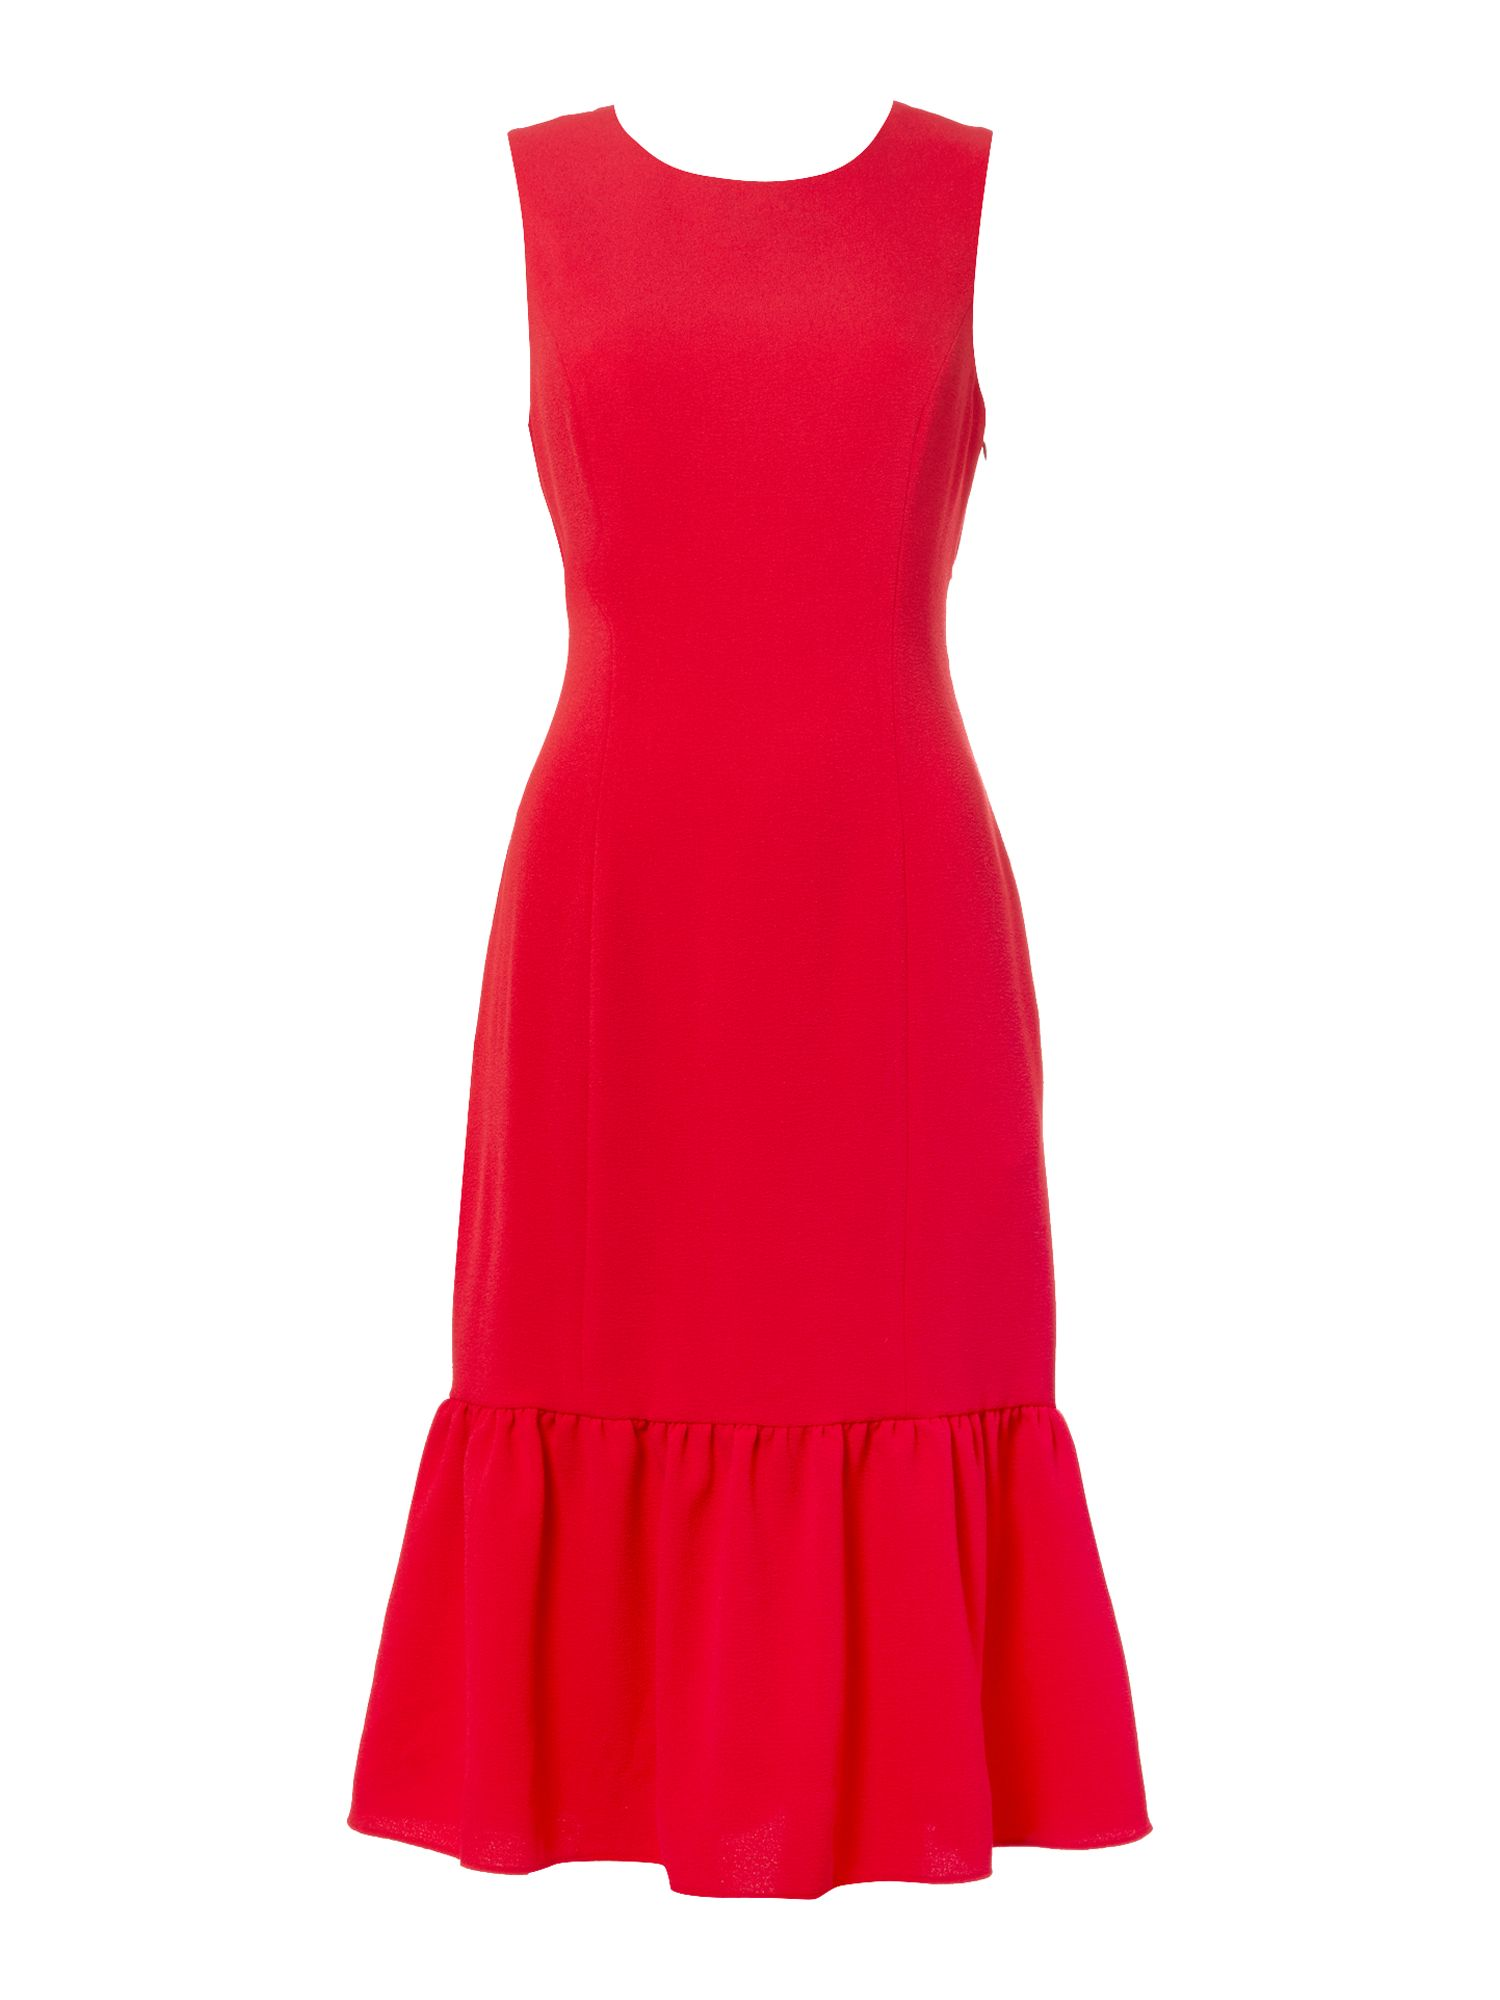 Adrianna Papell Sleeveless Kick Hem Shift Dress, Lipstick